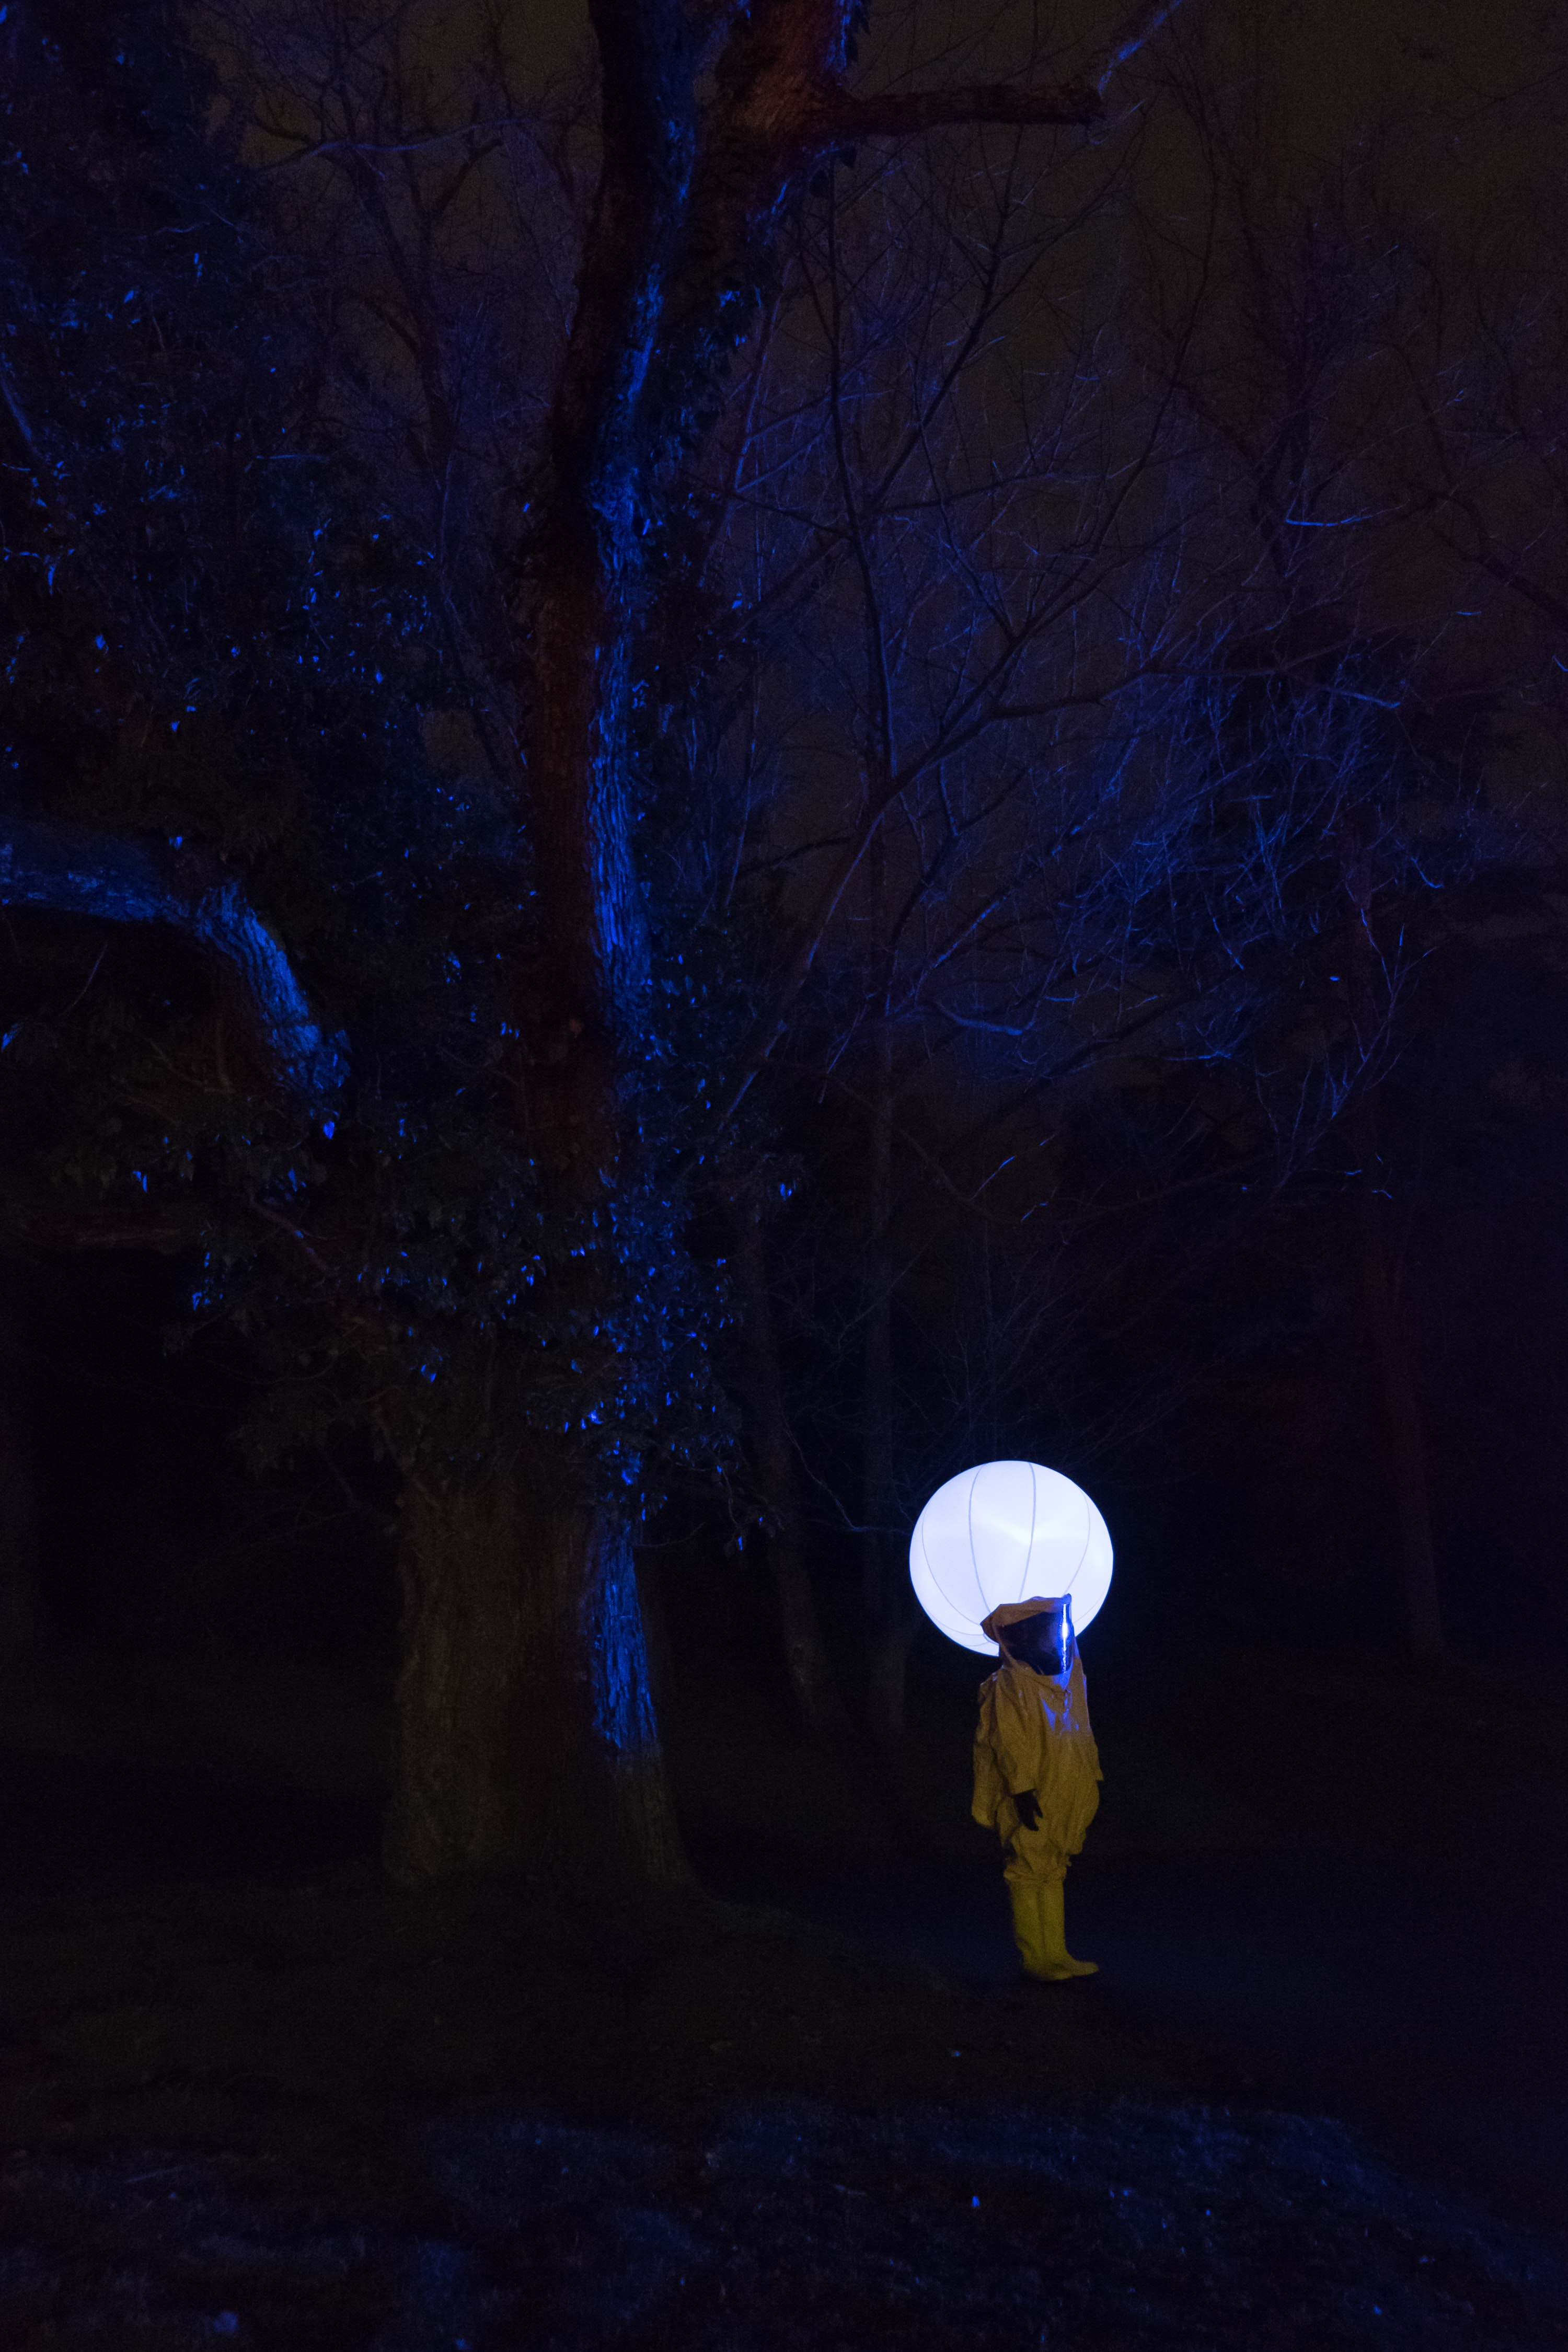 person in white outfit standing under leafless tree at nighttime